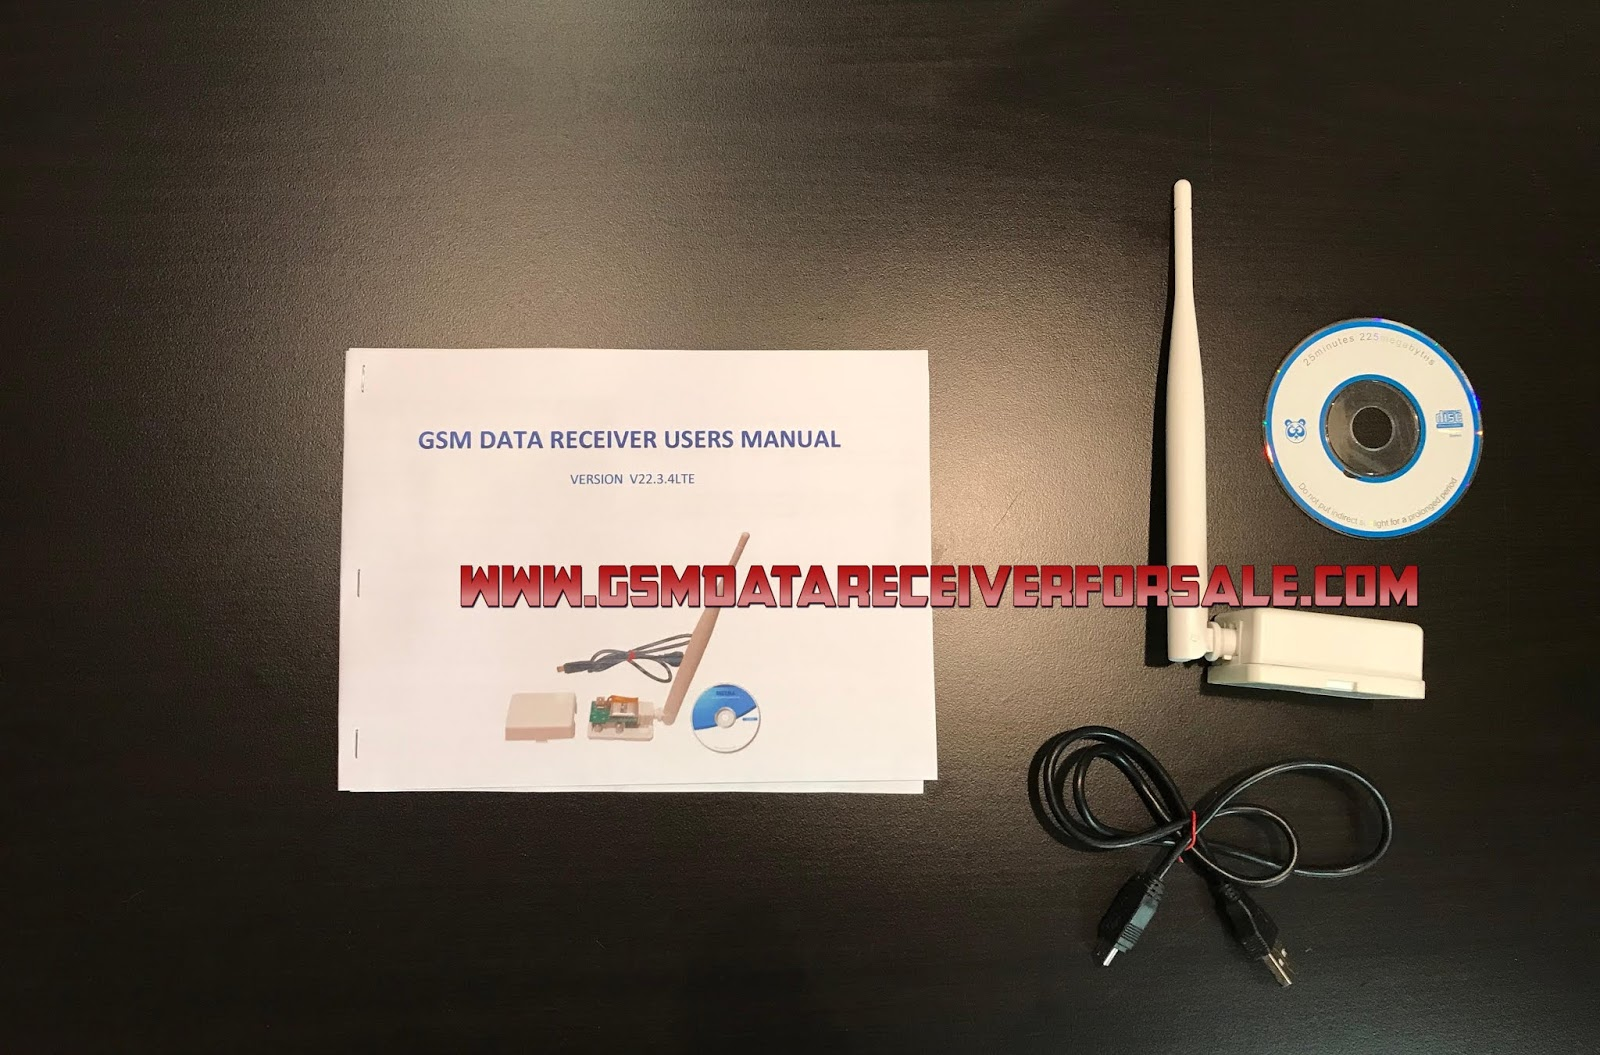 HOW IT WORKS ~ gsm data receiver for sale, atm skimmer